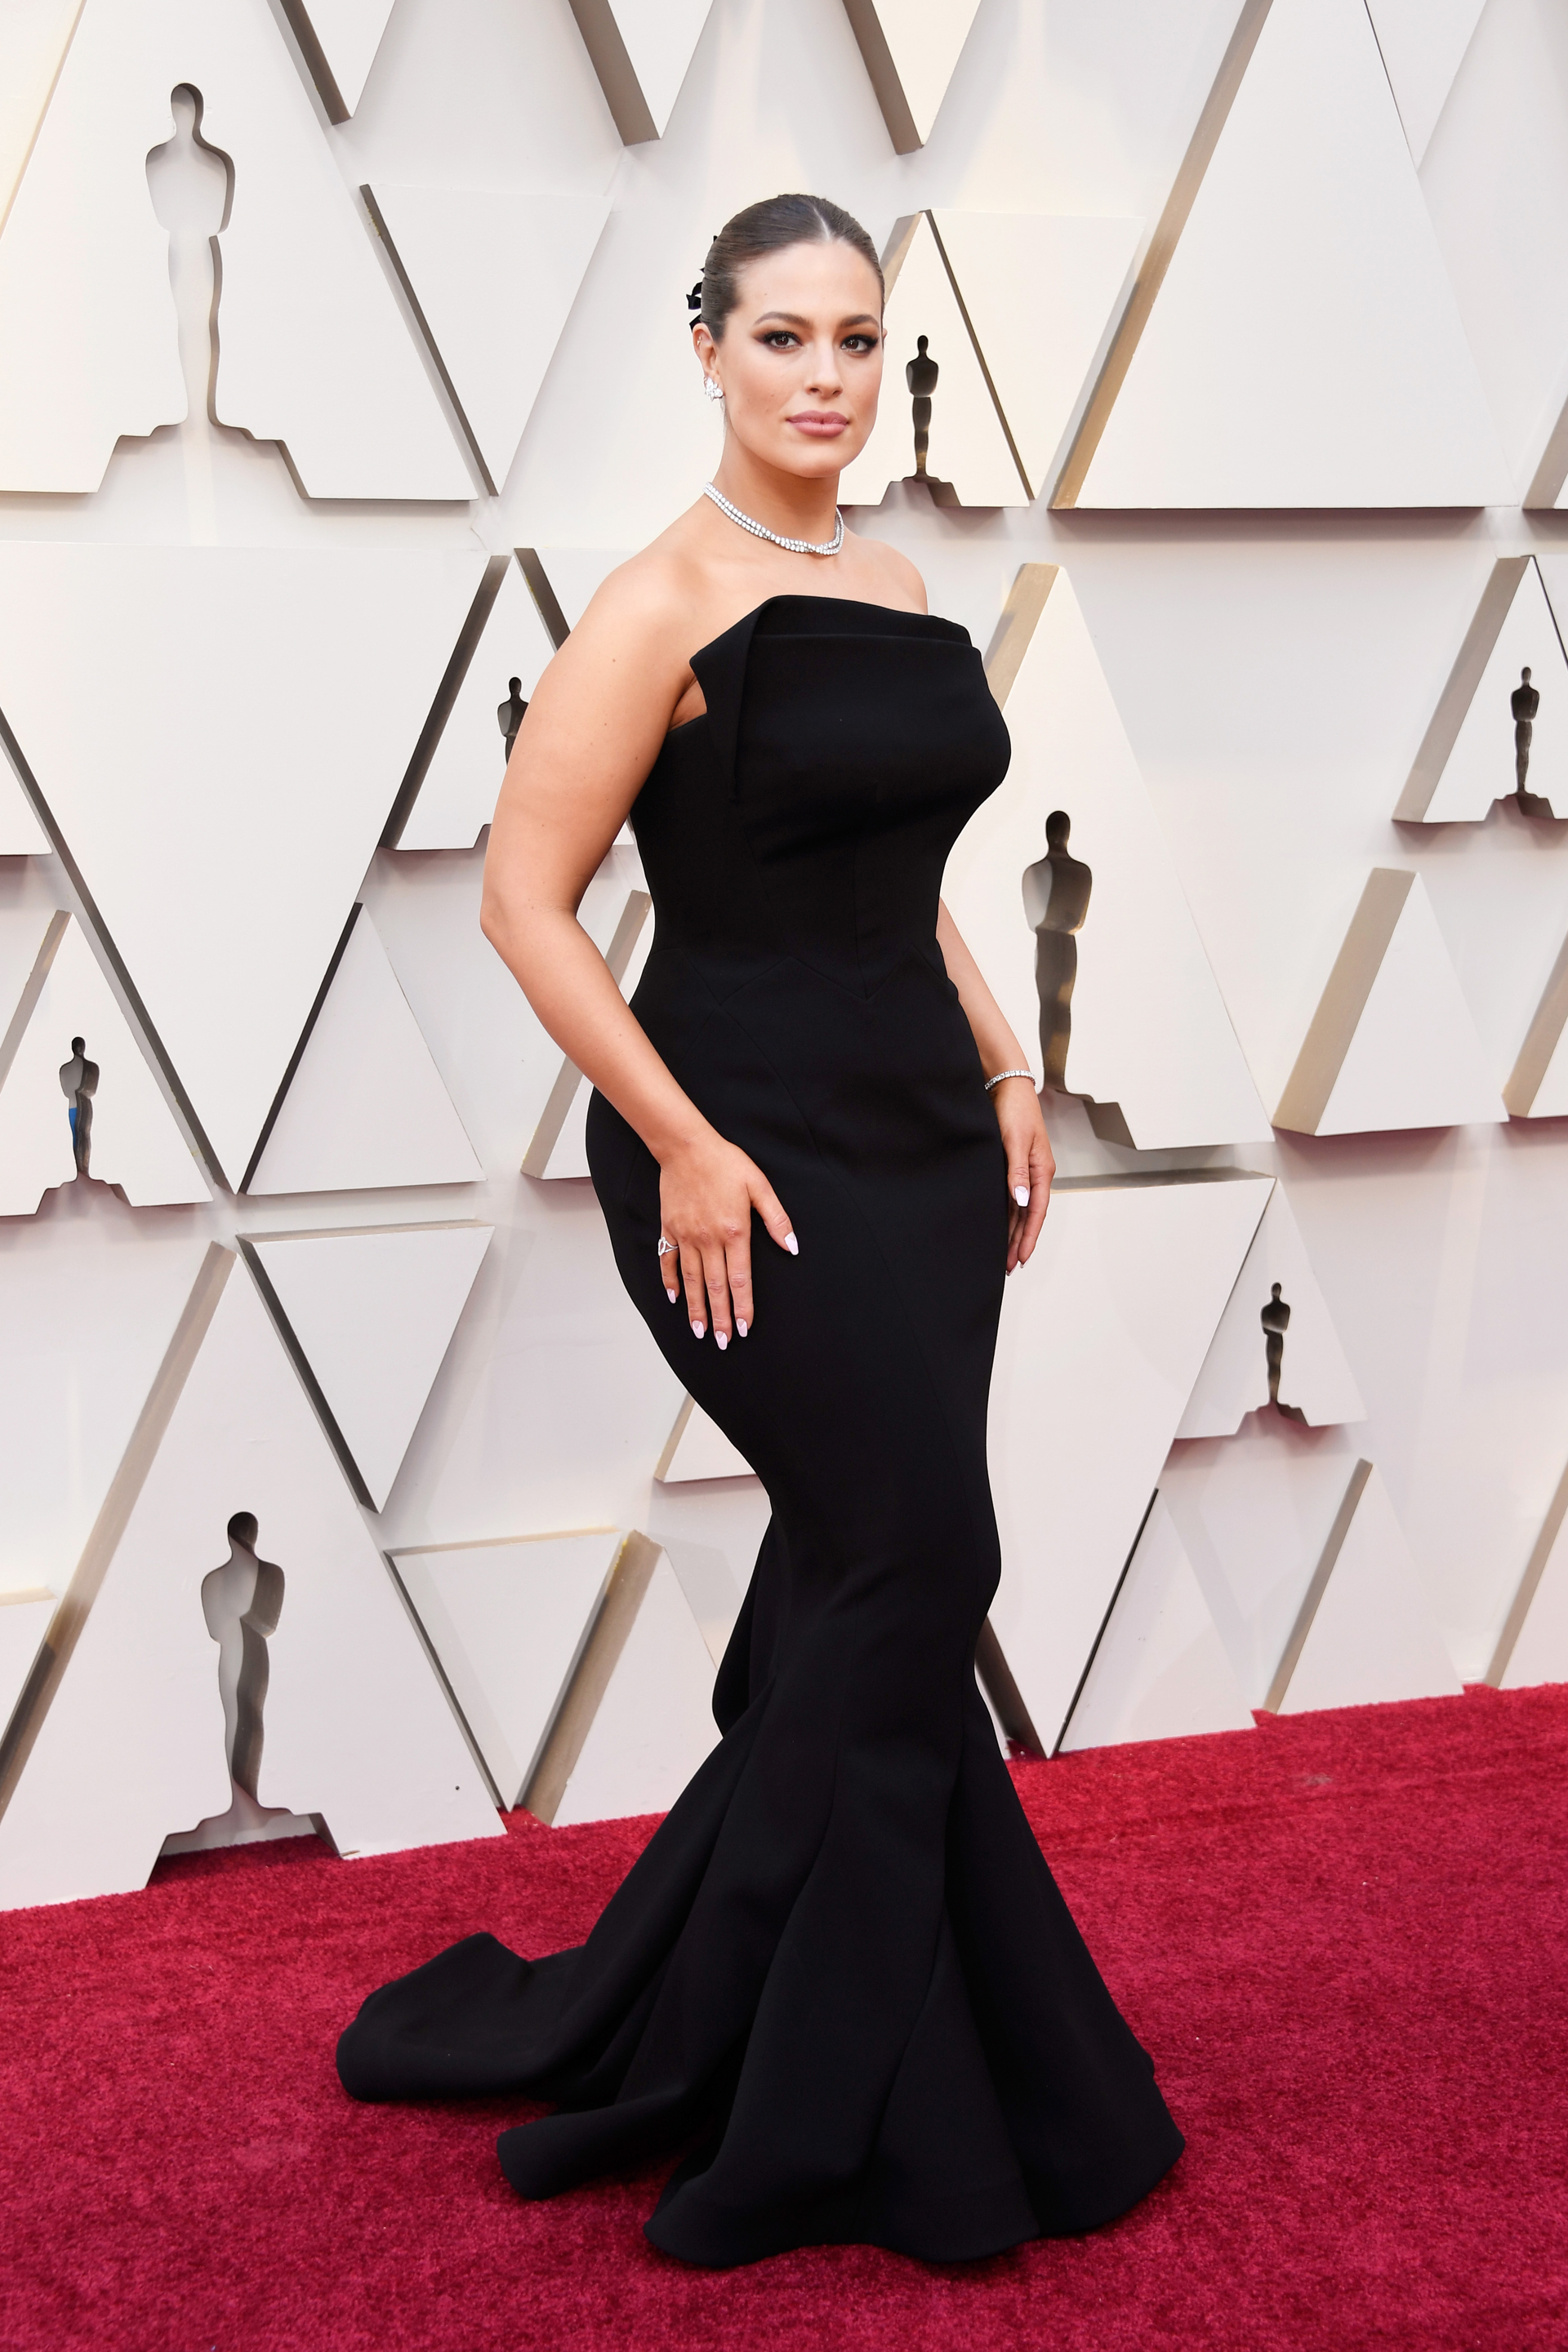 HOLLYWOOD, CALIFORNIA - FEBRUARY 24: Ashley Graham attends the 91st Annual Academy Awards at Hollywood and Highland on February 24, 2019 in Hollywood, California. Frazer Harrison/Getty Images/AFP